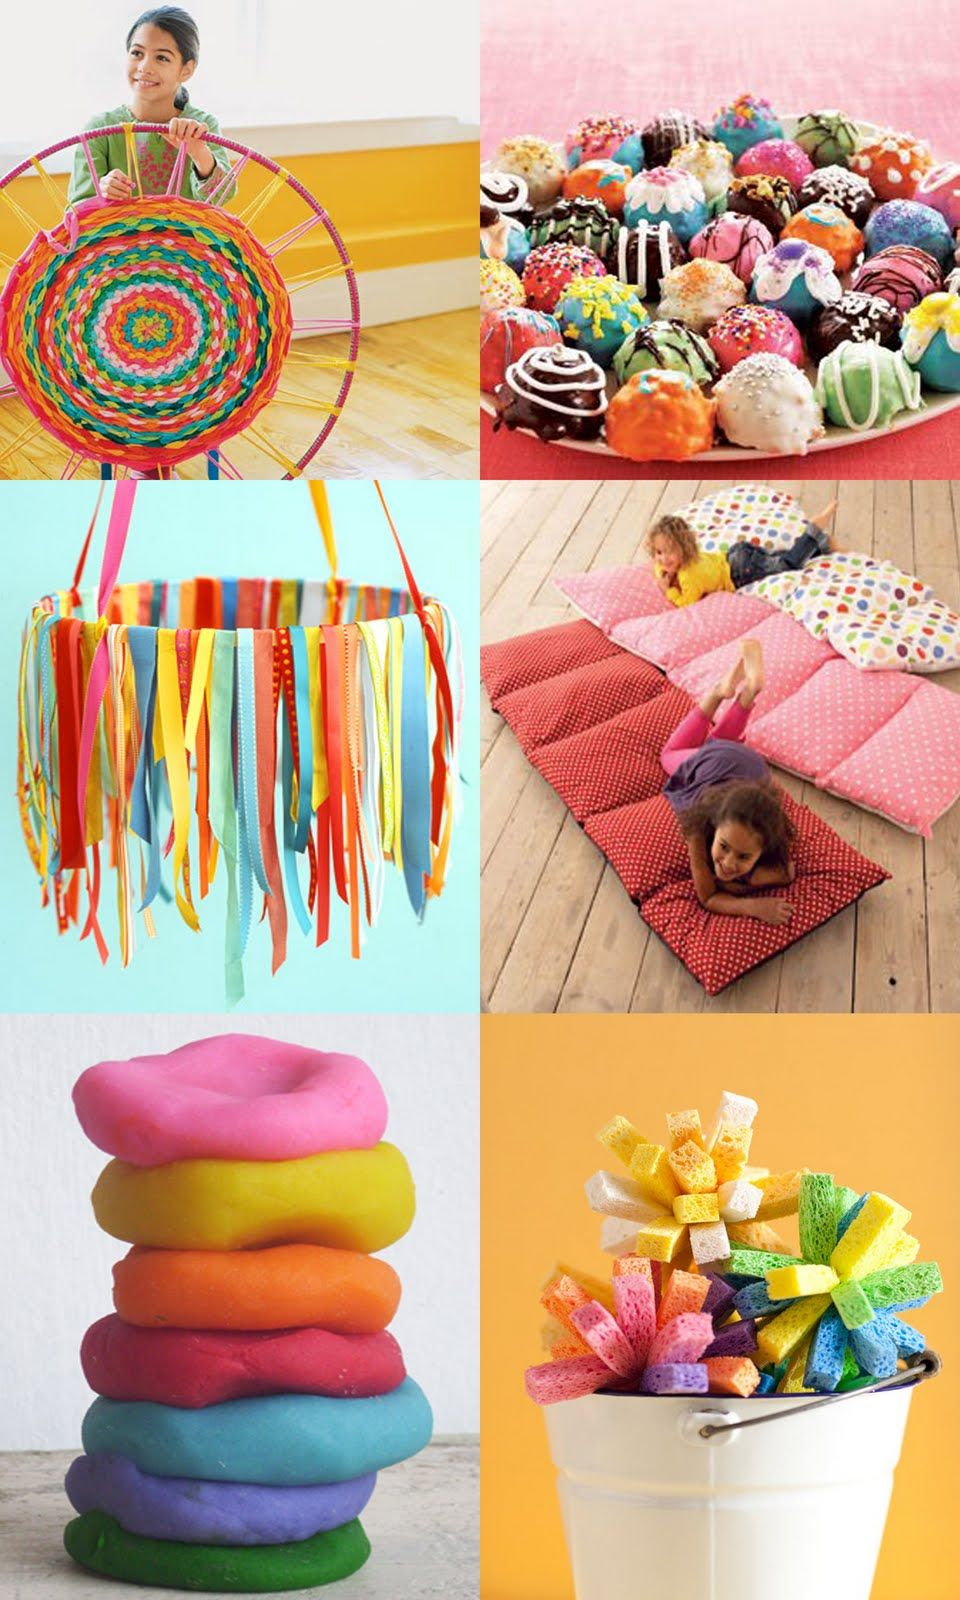 summer crafts craft adults fun diy cute sleepover projects super activity easy ribbon activities kid sleep bed cool mobile lovin